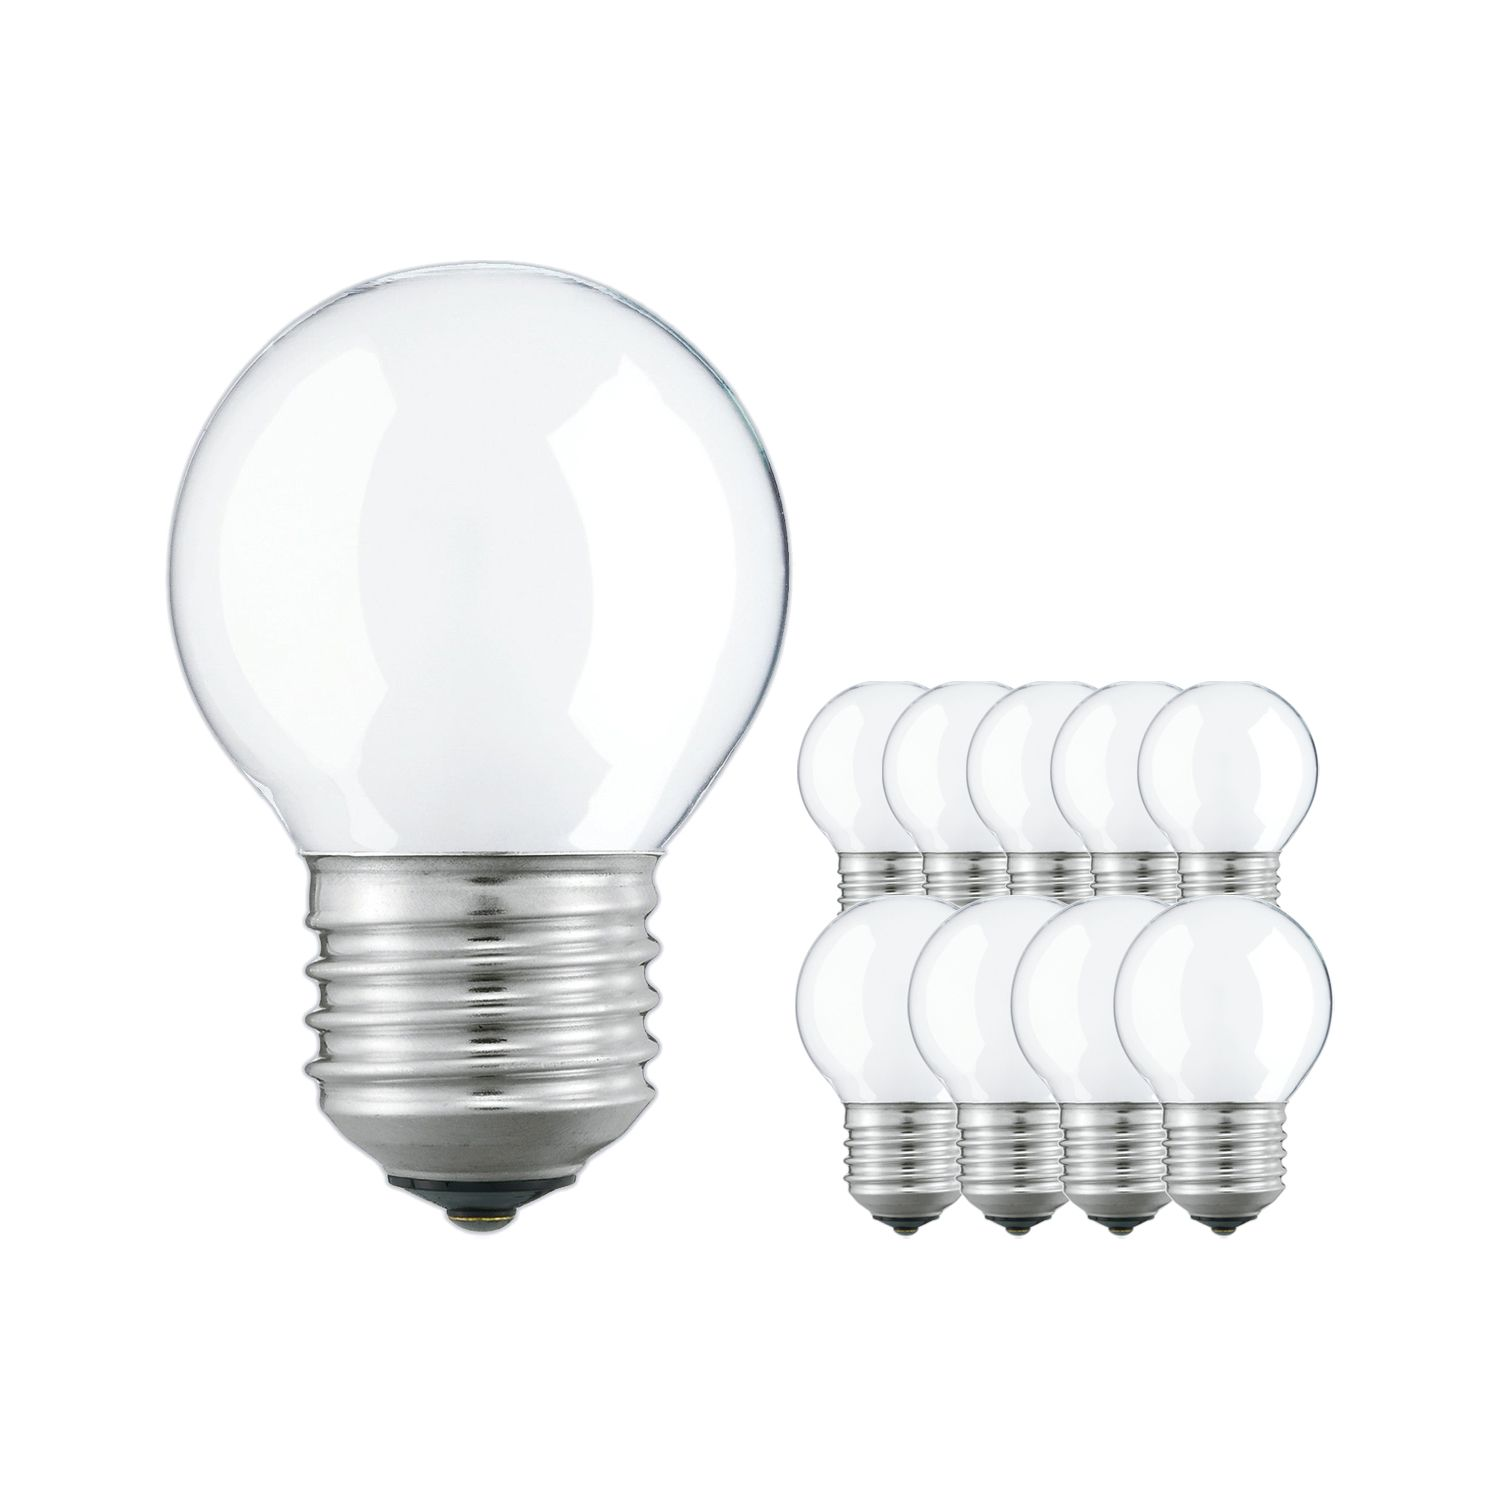 Multipack 10x Standard Incandescent Bulb Frosted P45 E27 25W 230V